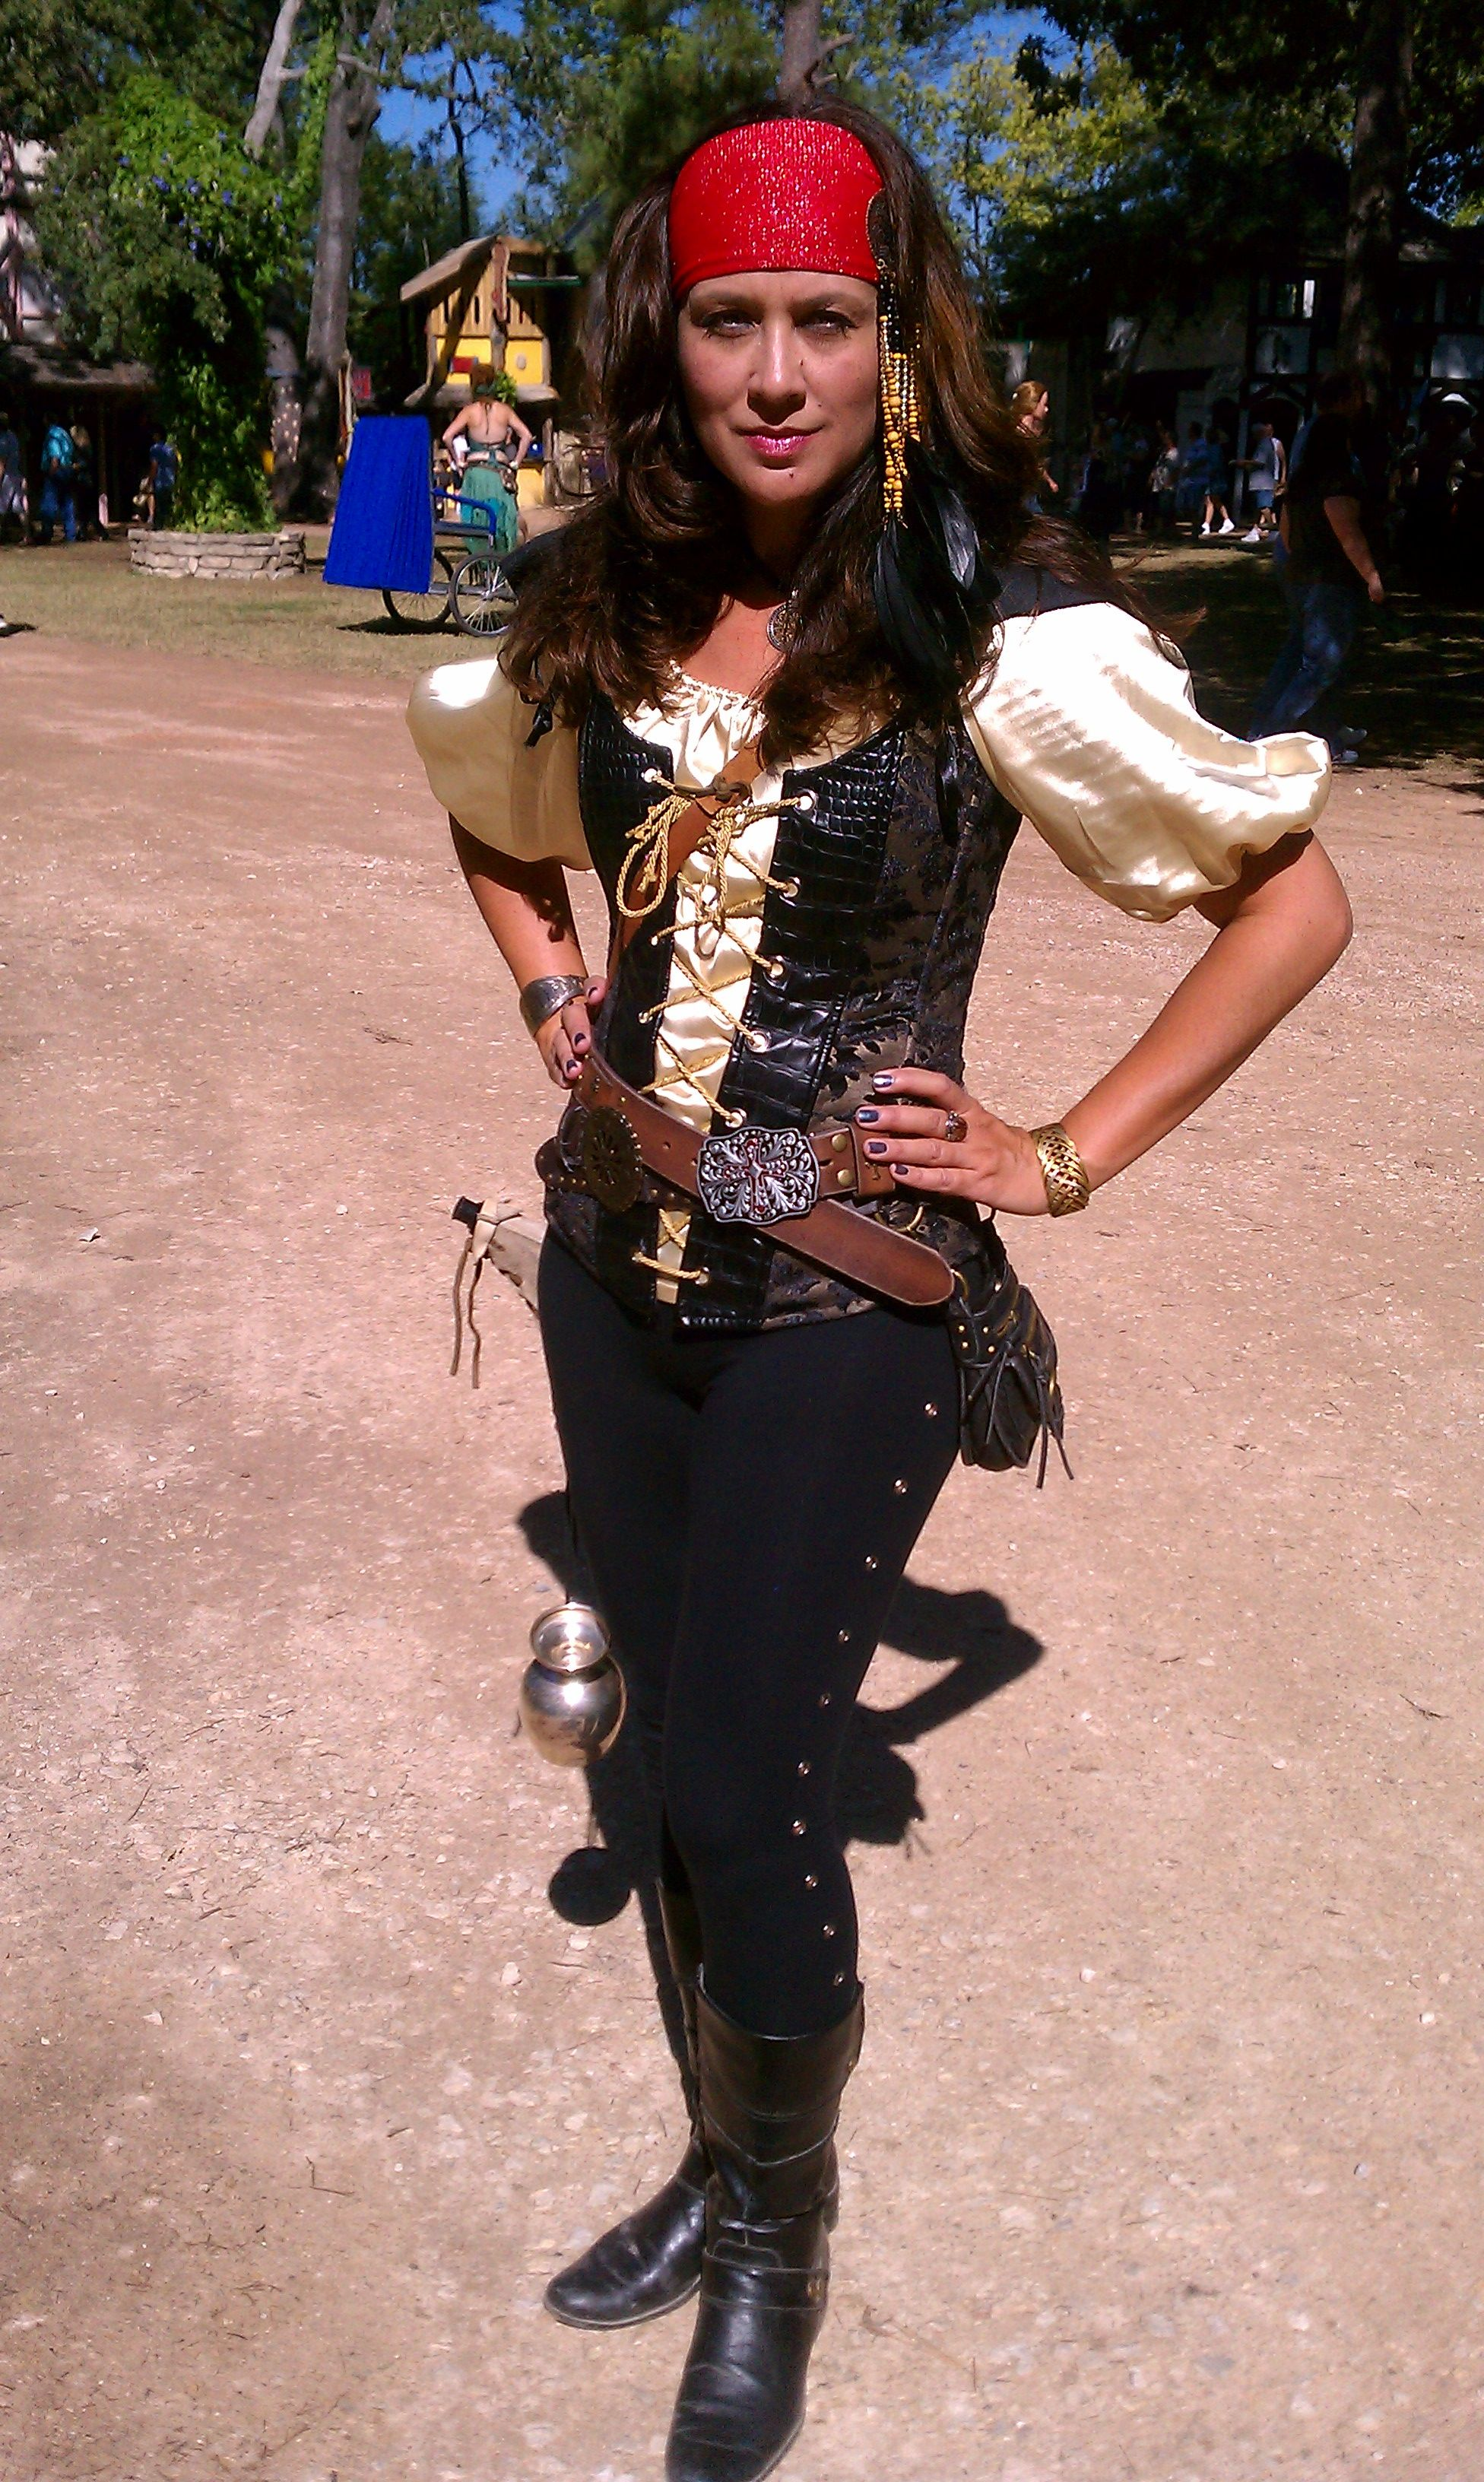 Pin by Audrey Leach on COSTUMES!!! Homemade pirate